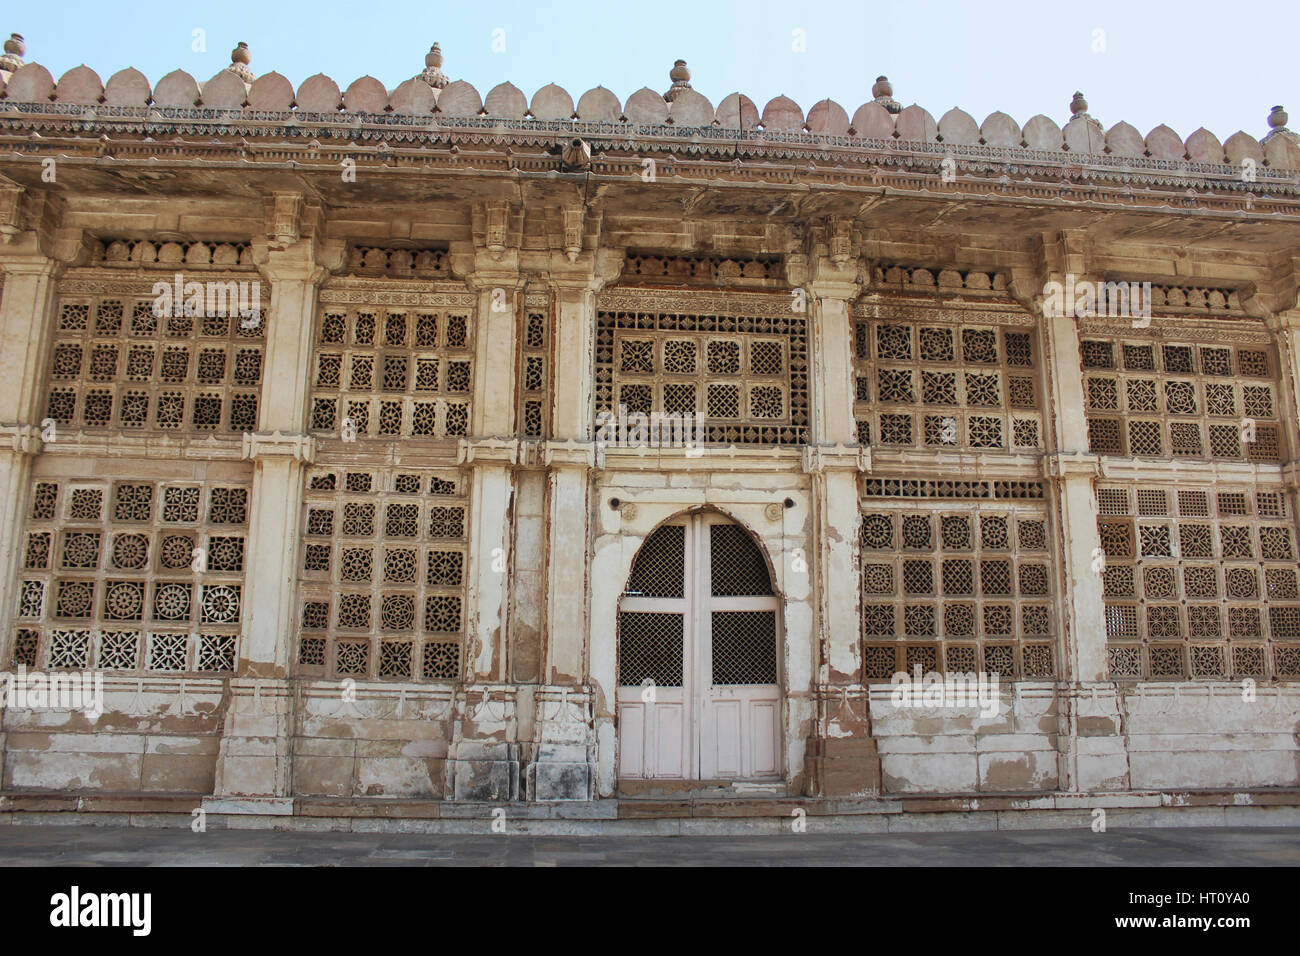 Carved stone grilles on the walls of the Tomb of Sufi Saint Shaikh Ahmed Khattu at Sarkhej Roza in Ahmedabad Stock Photo